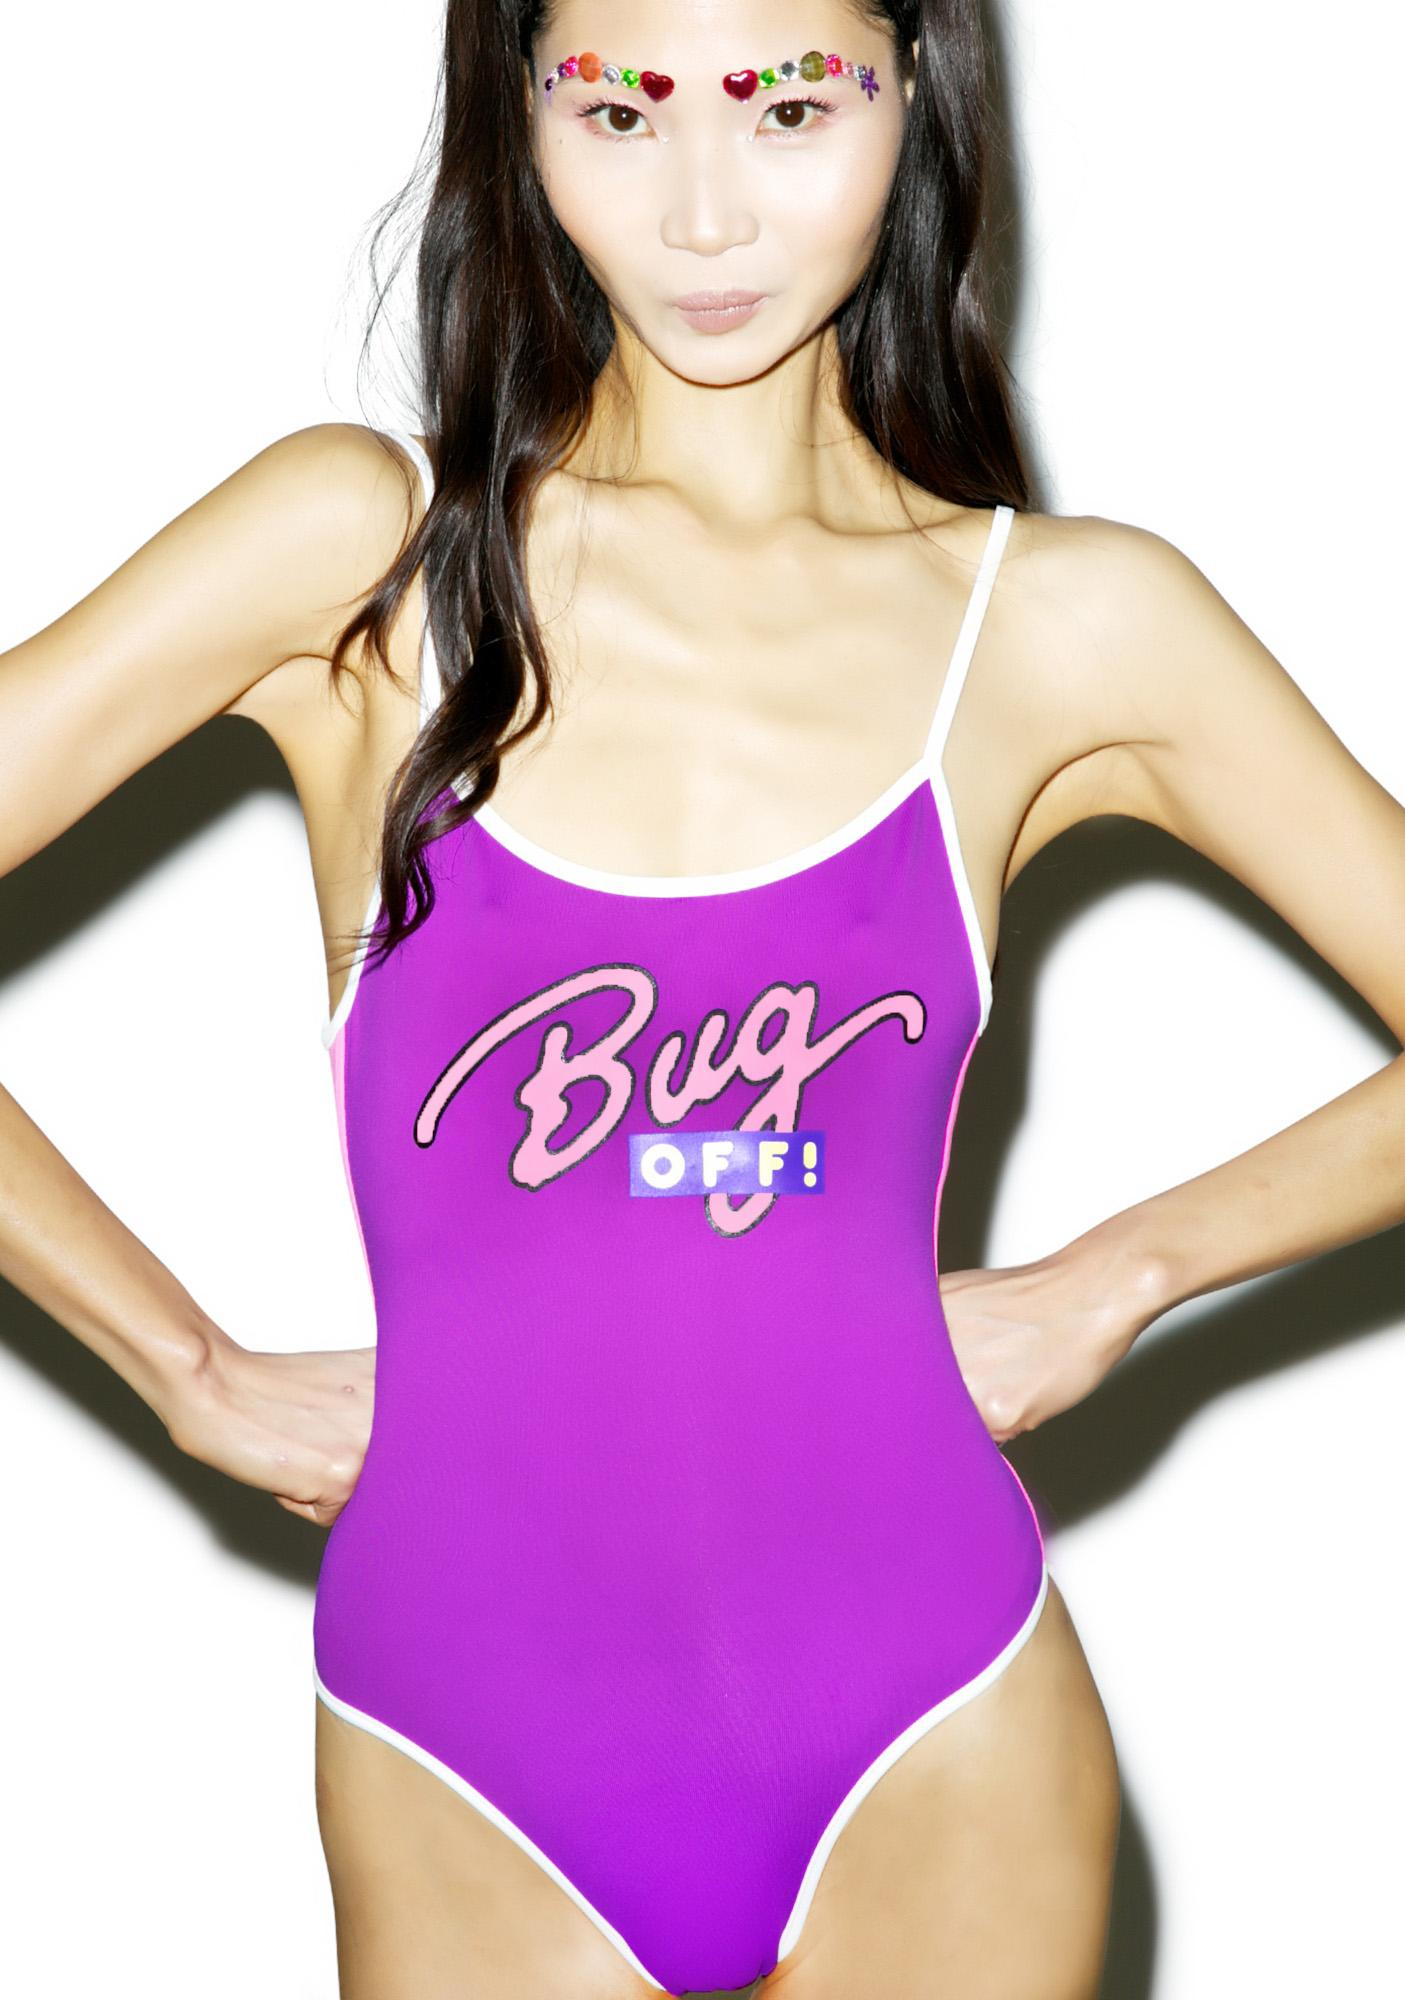 Mandalynn Swim Bug Off! One Piece Swimsuit